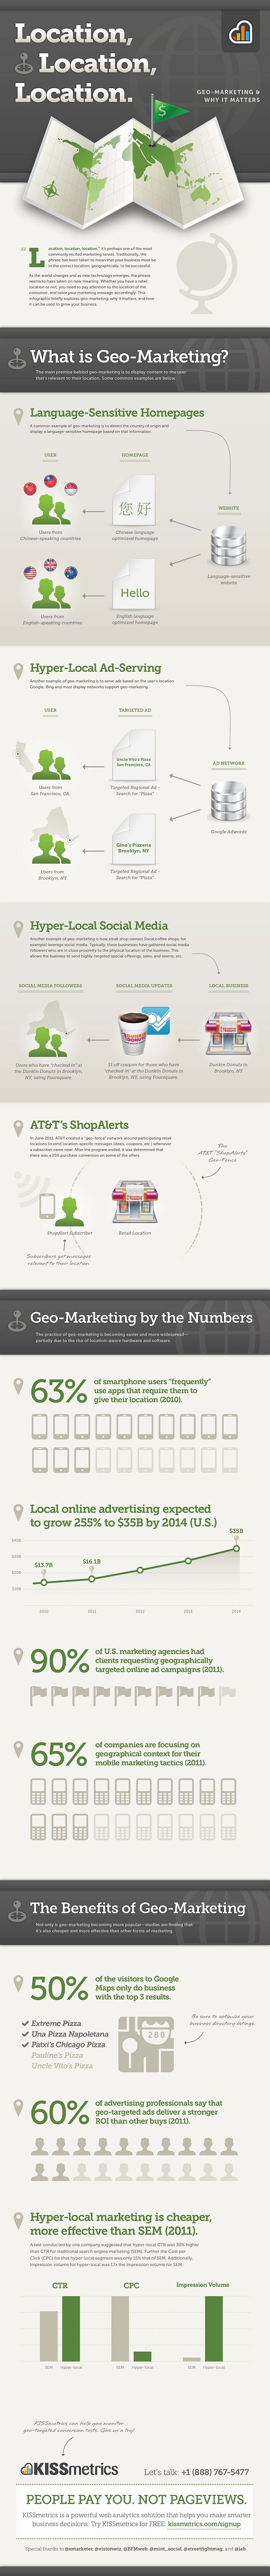 Location, Location, Location – Geo-marketing & Why it Matters [Infographic]Marketing Strategies, Infografia Infographic, Geo Marketing, Geomarketing Matter, Social Media, Locations Geomarketing, Socialmedia, Infographic Design, Business Infographic